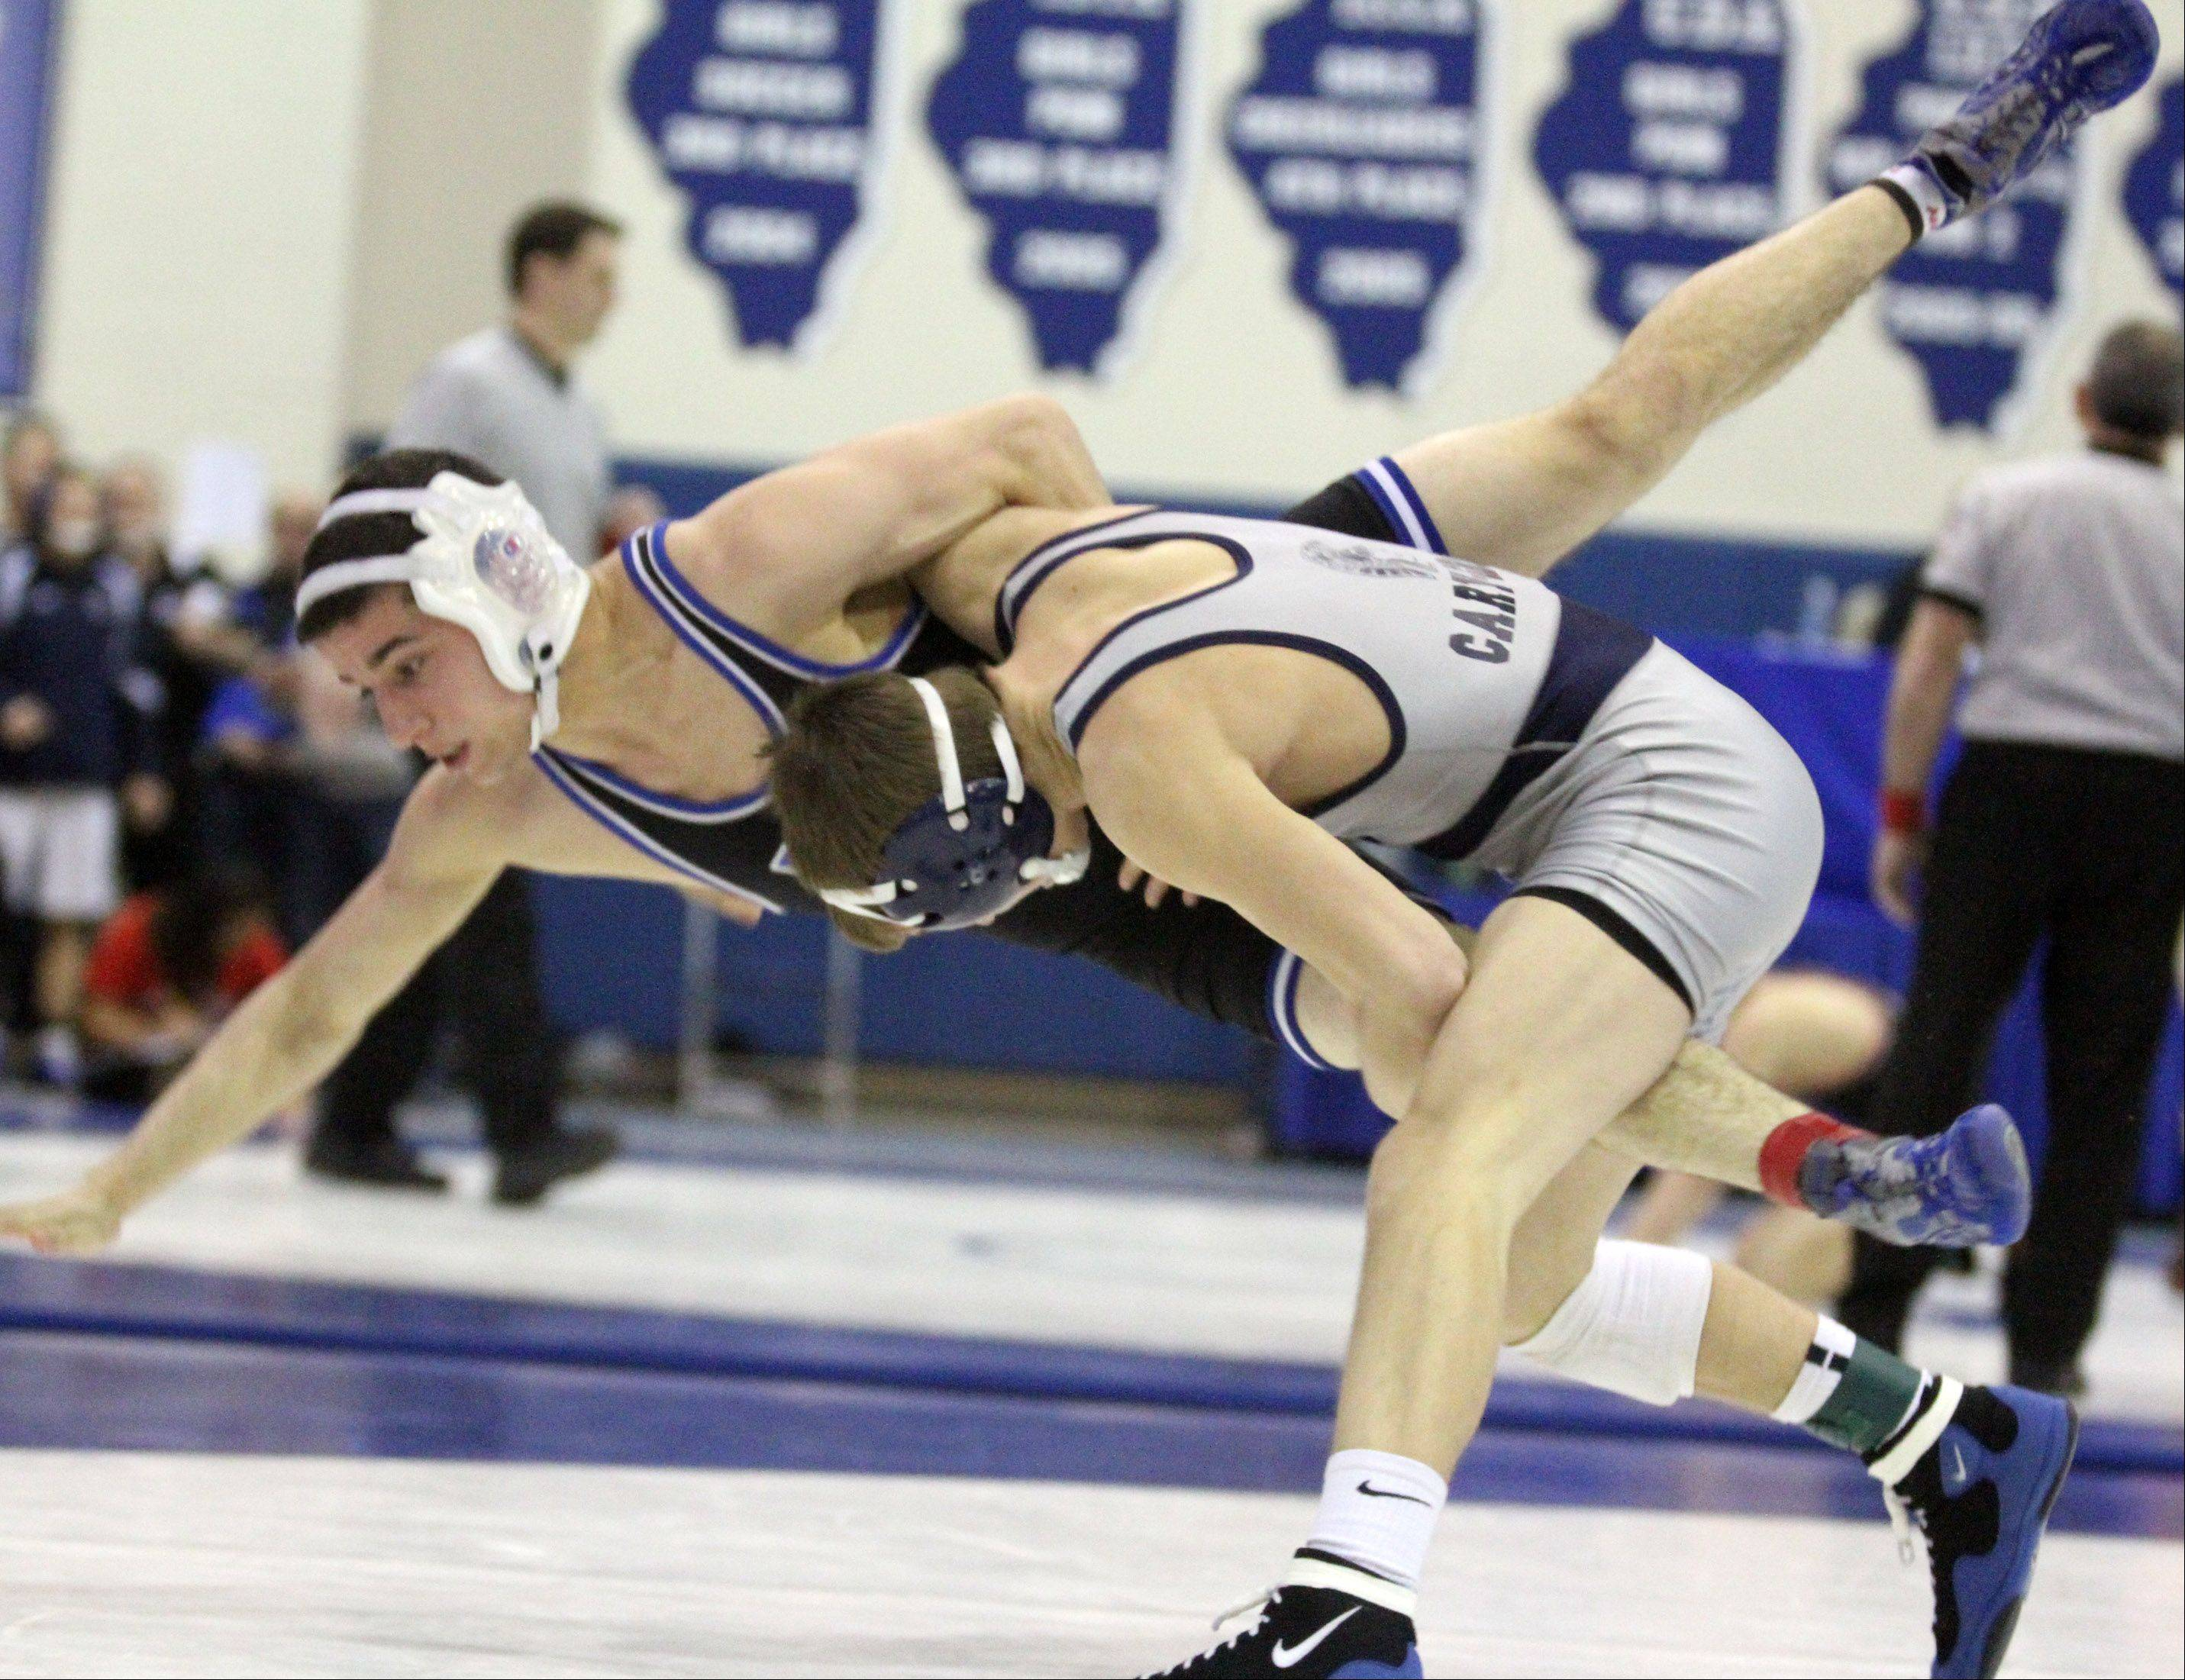 George LeClaire/gleclaire@dailyherald.comCary-Grove's Michael Cullen, right, wins his 113-pound championship match against Highland Park's Nate Kessler at the Class 3A individual wrestling regional at Lake Zurich on Saturday, February 2, 2013.